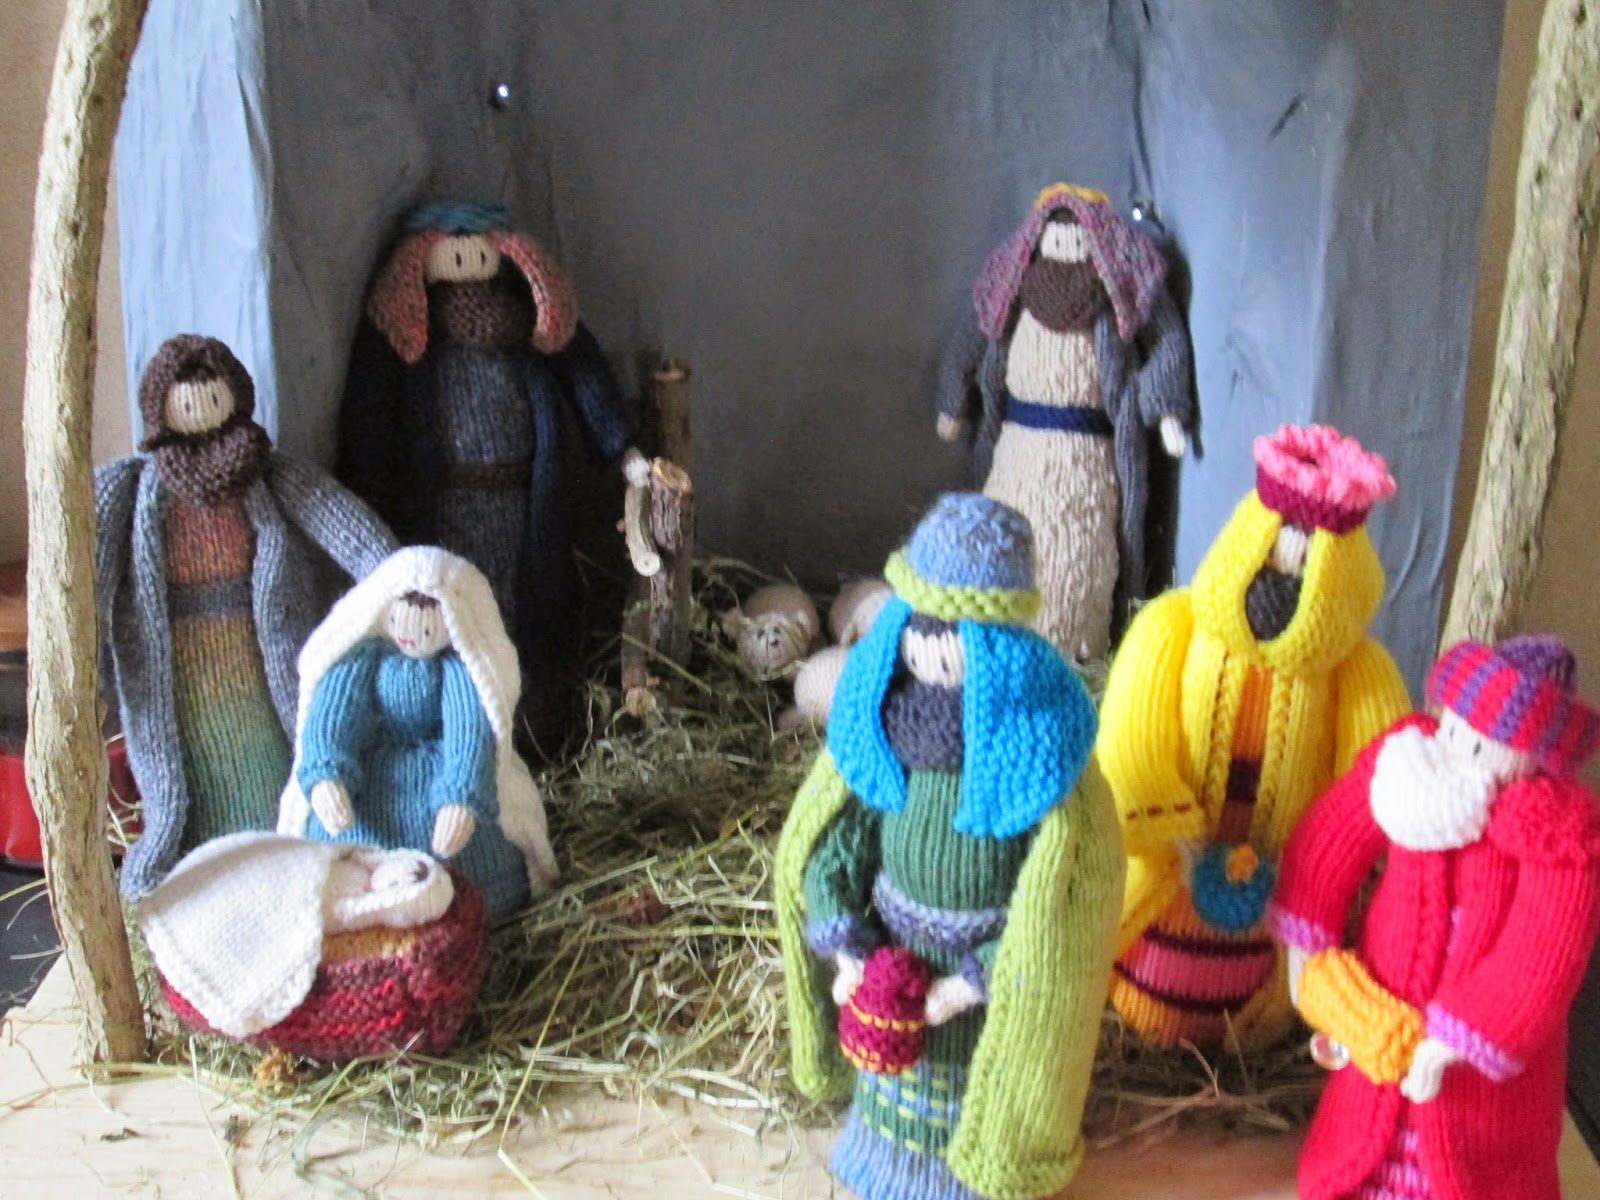 hookin A yarn: Knitted Nativity Set